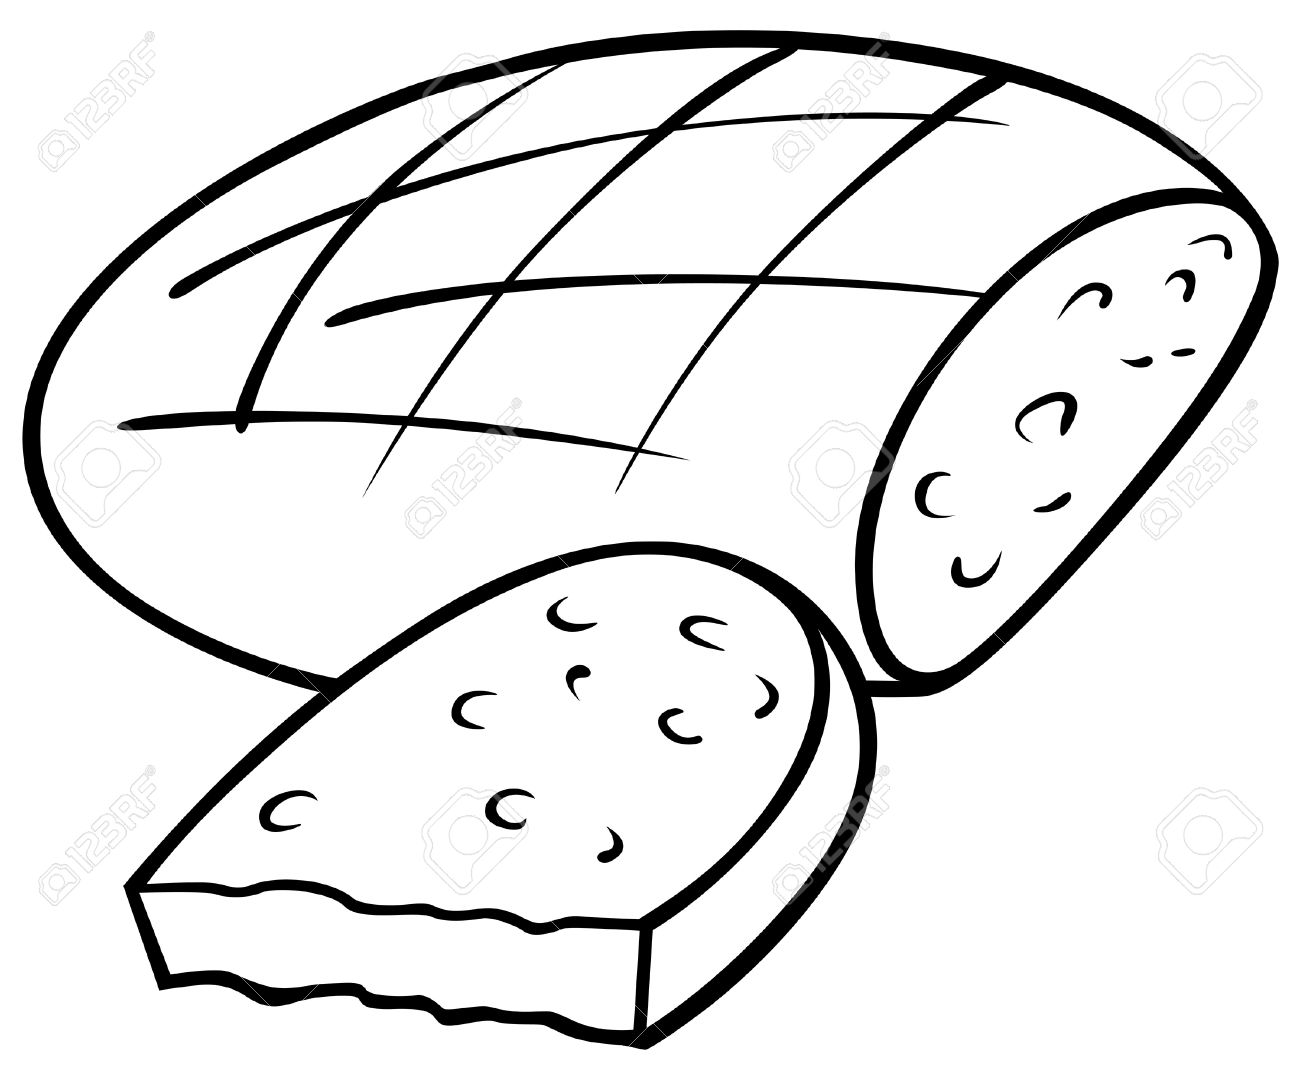 Loaf Of Bread Drawing at GetDrawings.com | Free for personal use ...